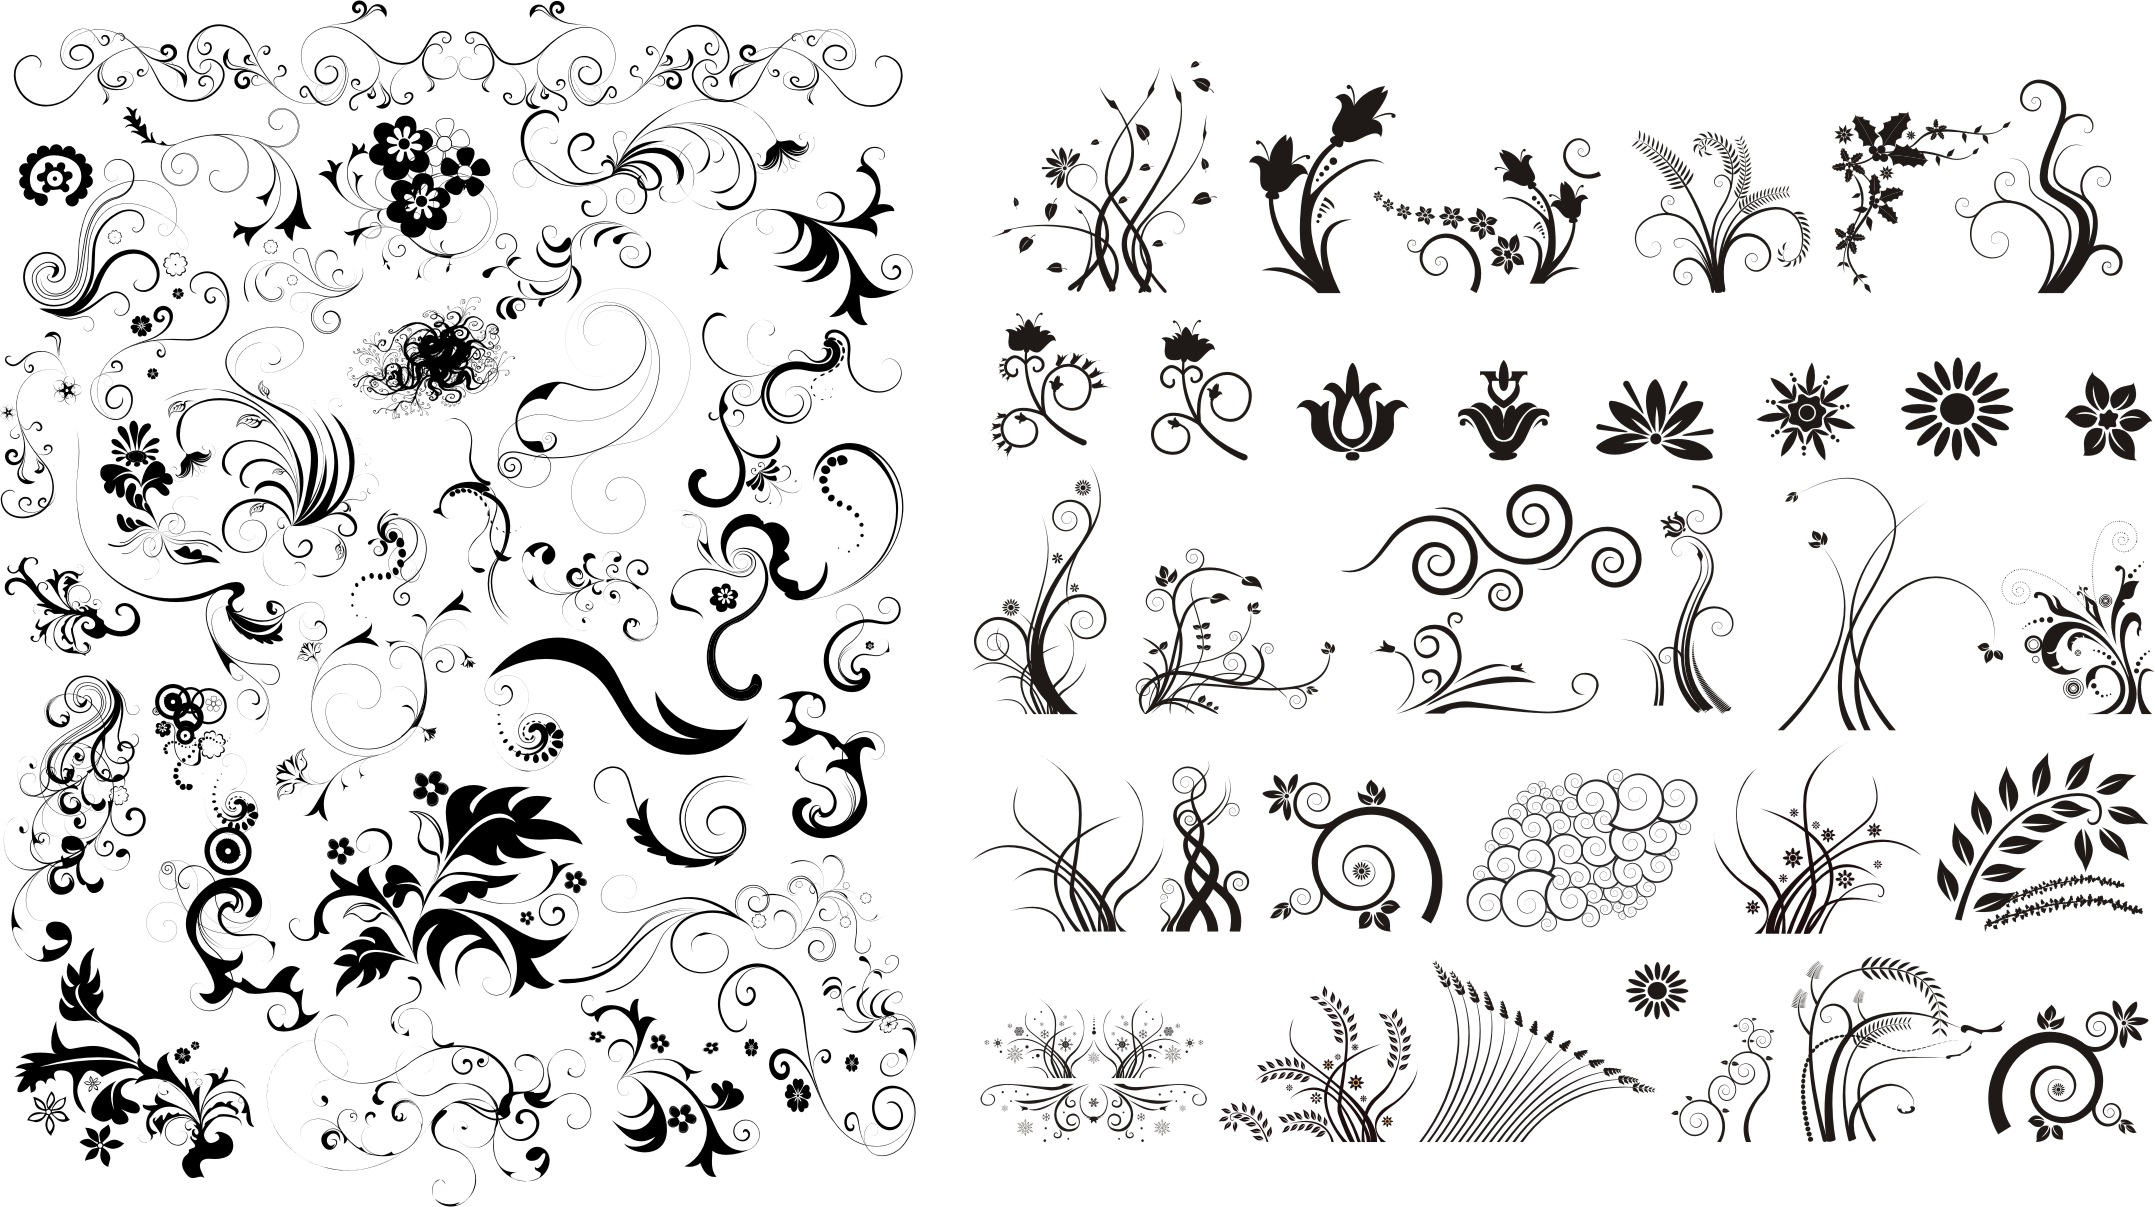 9 Corel Vector Files Images